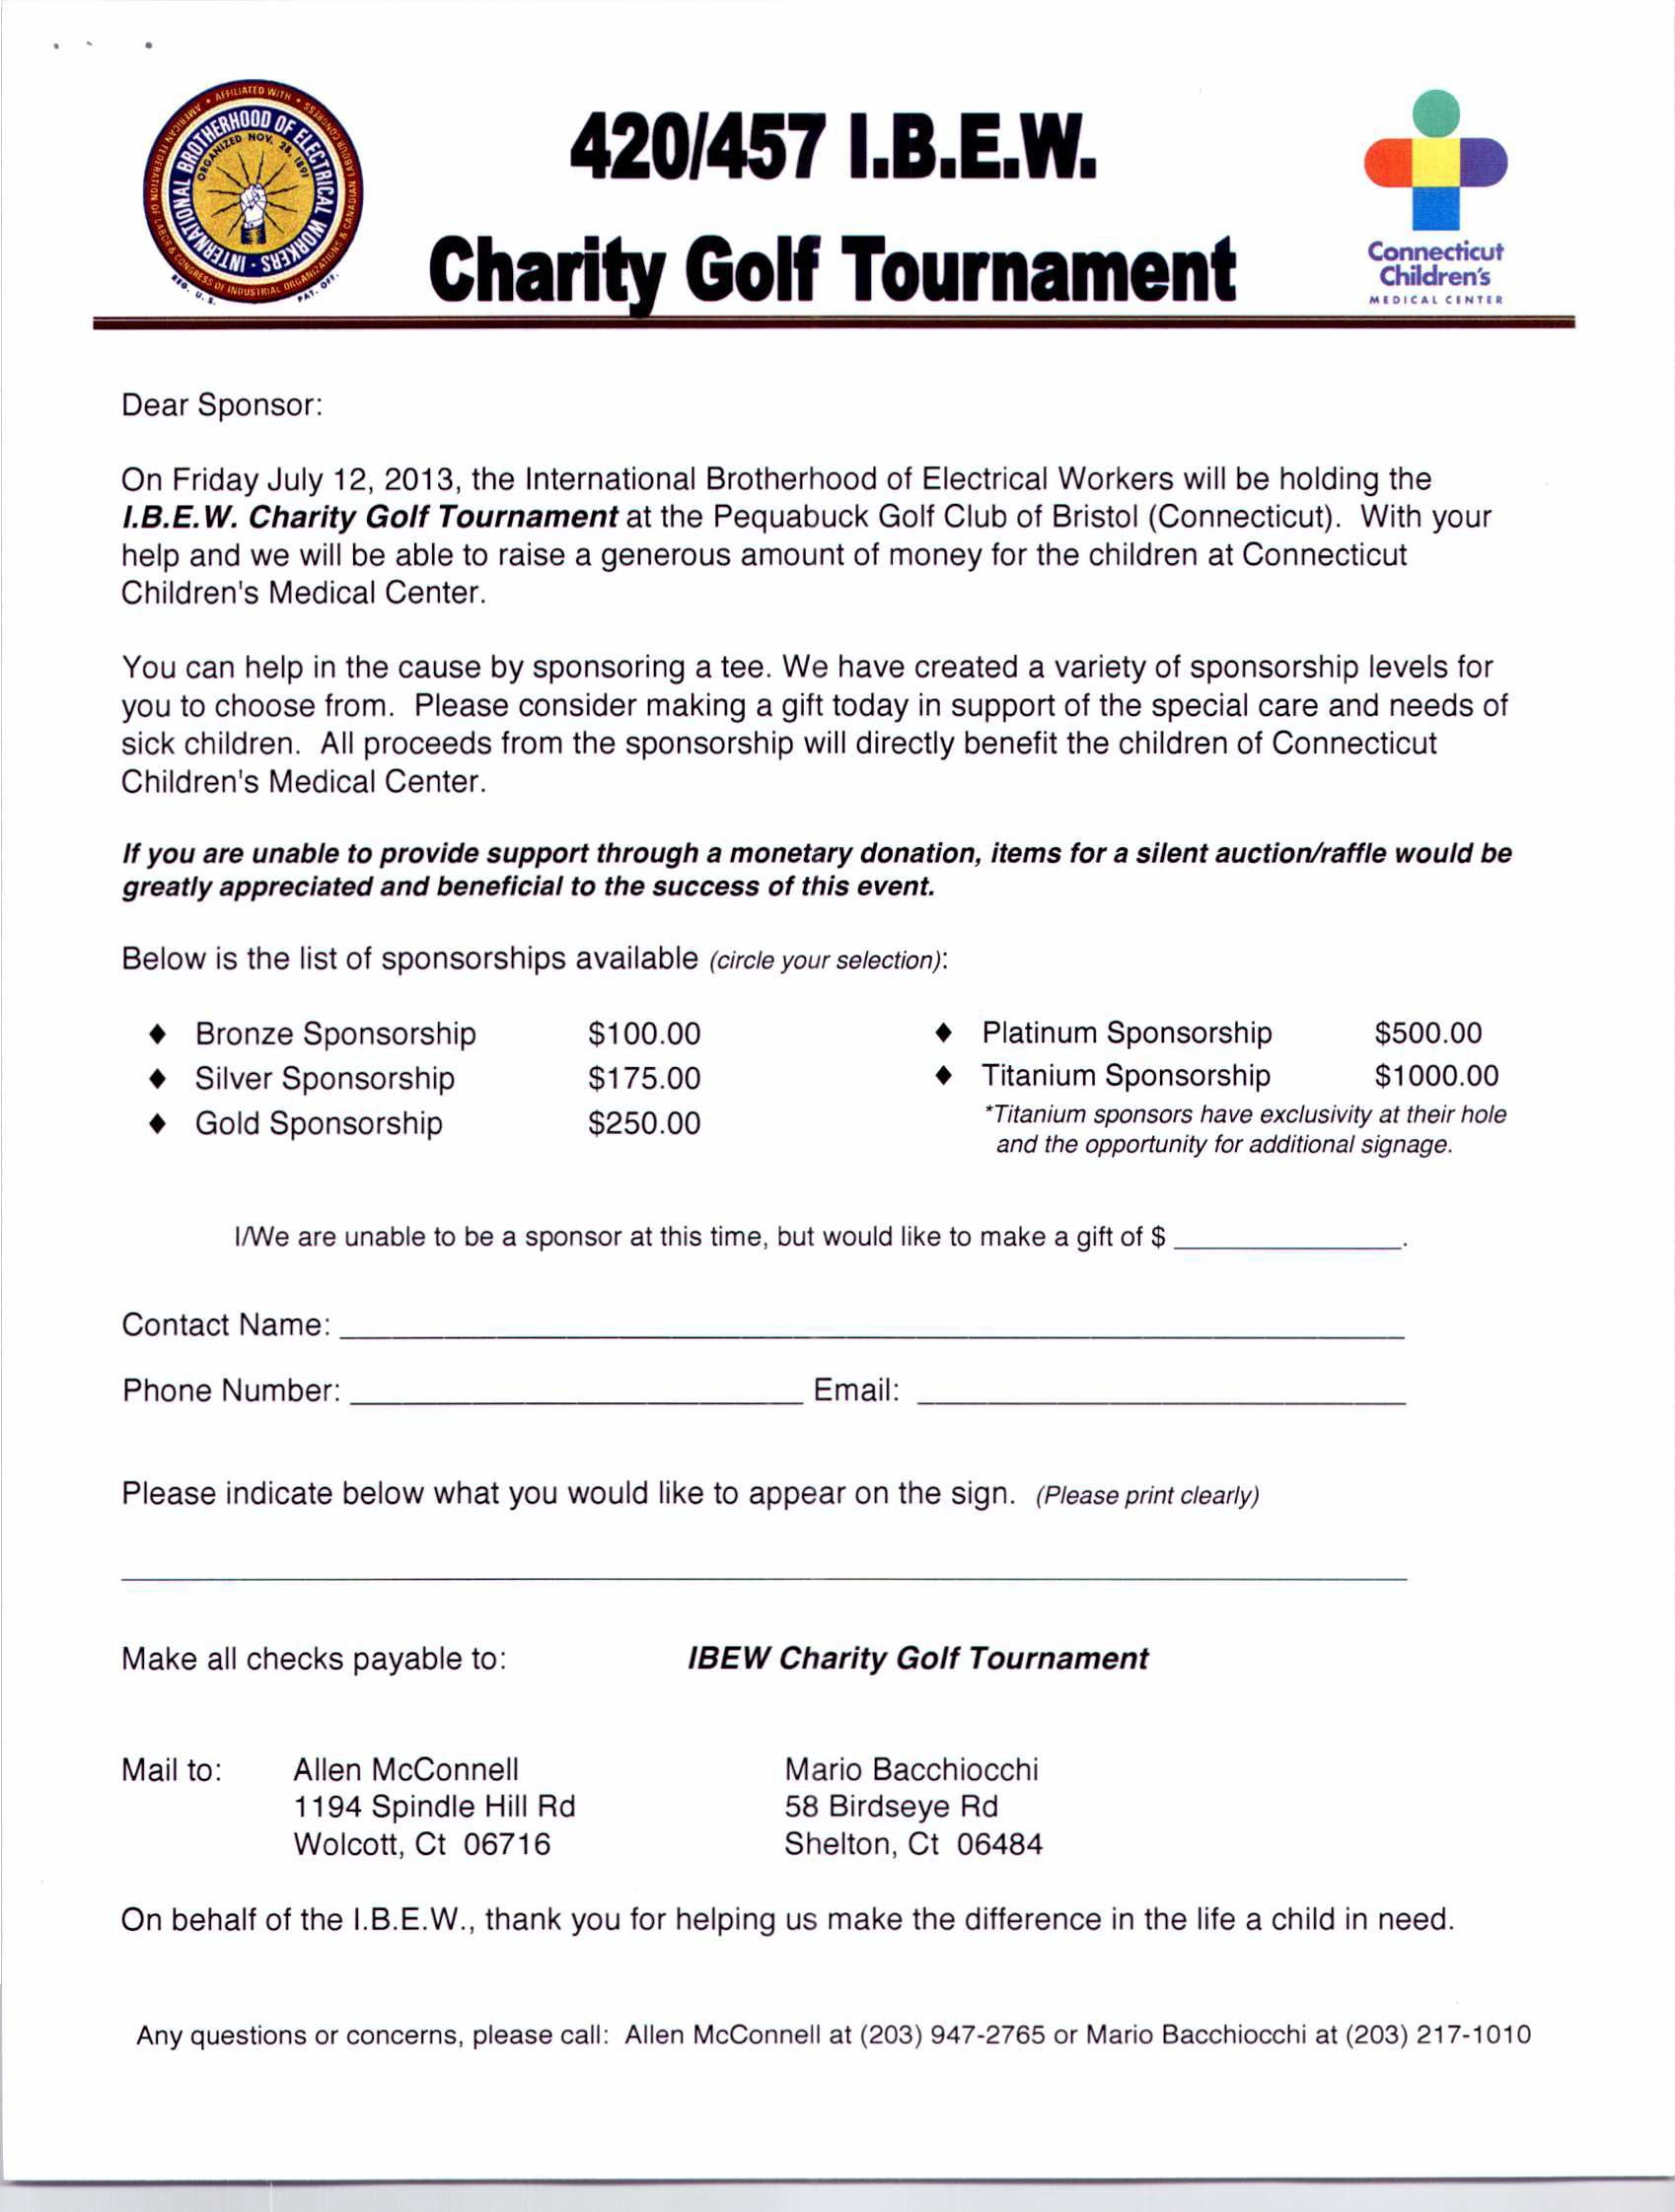 Annual Ibew Local Charity Golf Tournament Event Sponsorship Letter